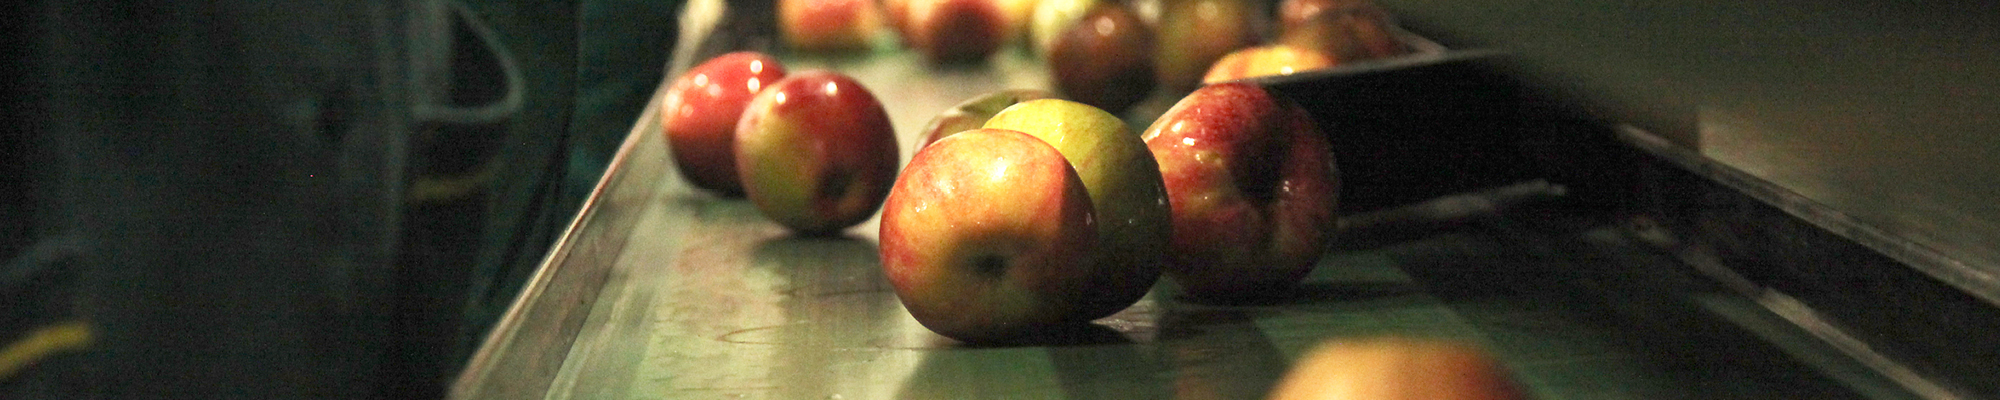 Apples on a processing line